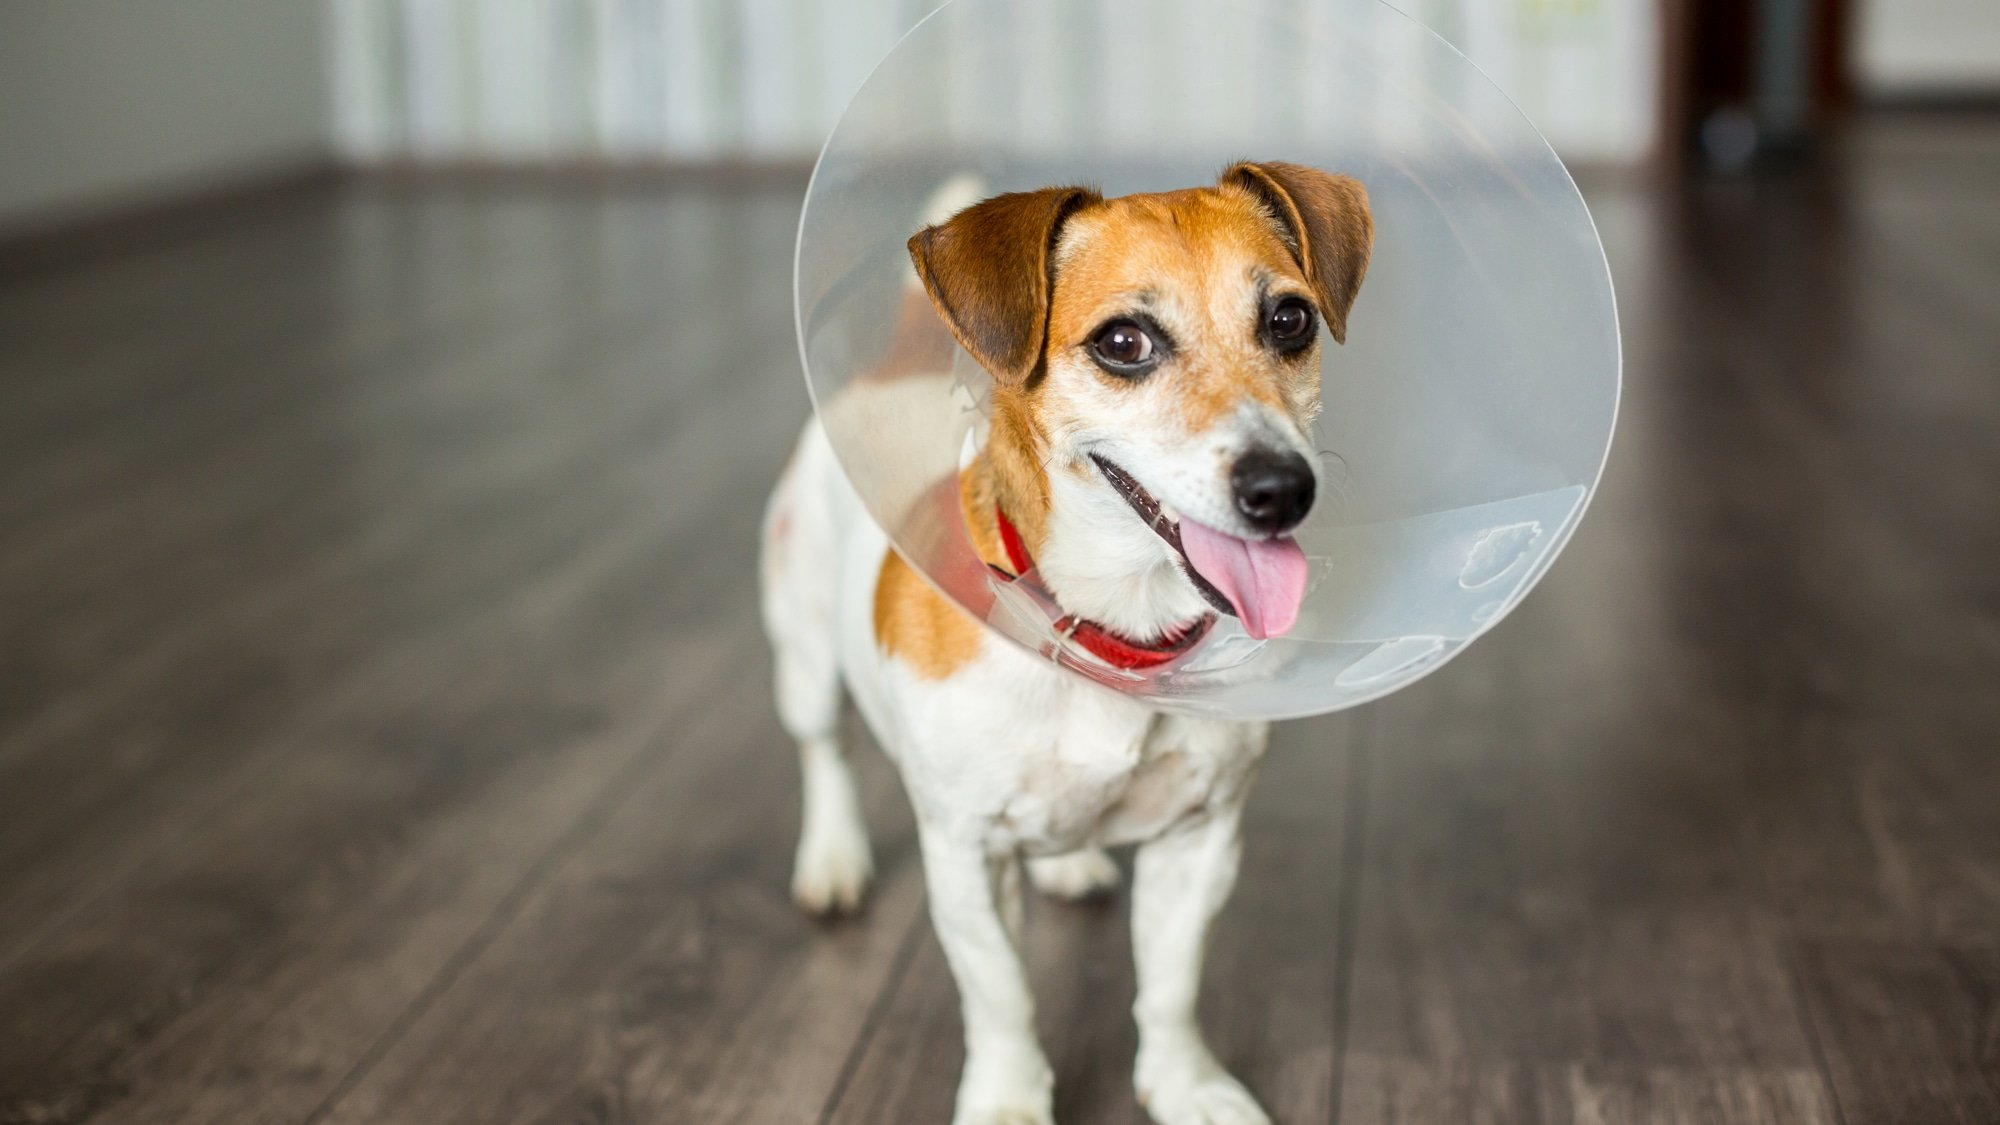 Should You Spay Your Dog?